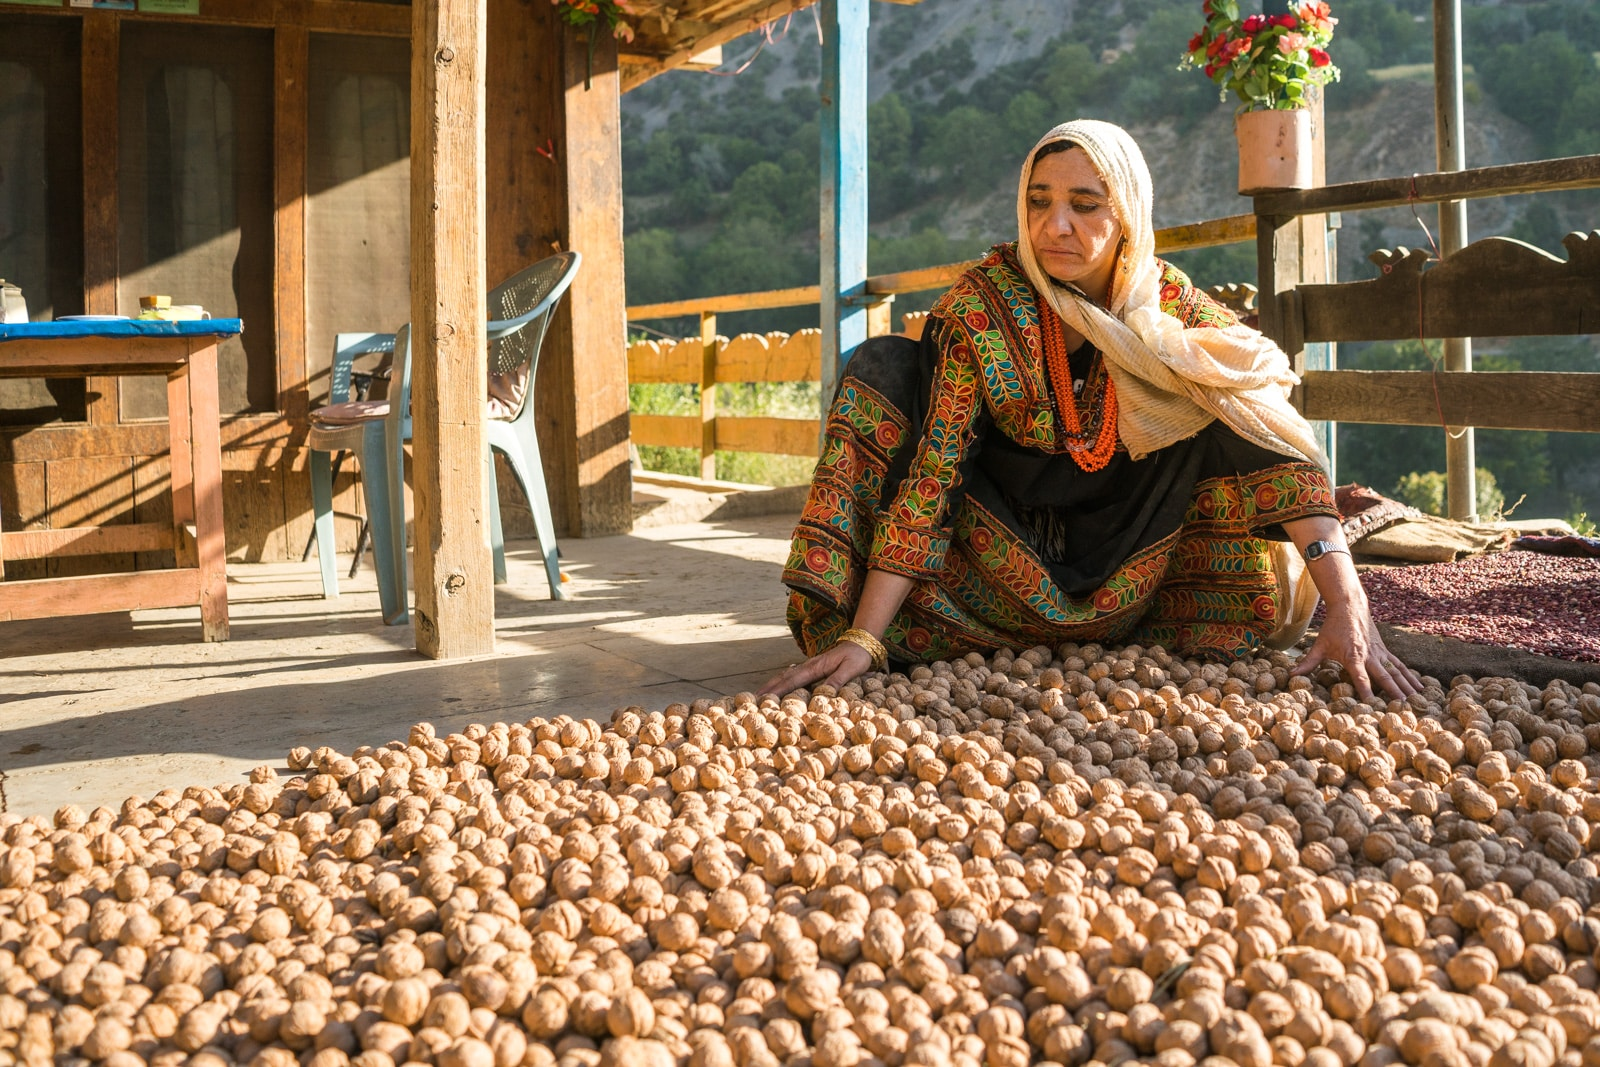 Kalasha woman drying out walnuts to store for winter